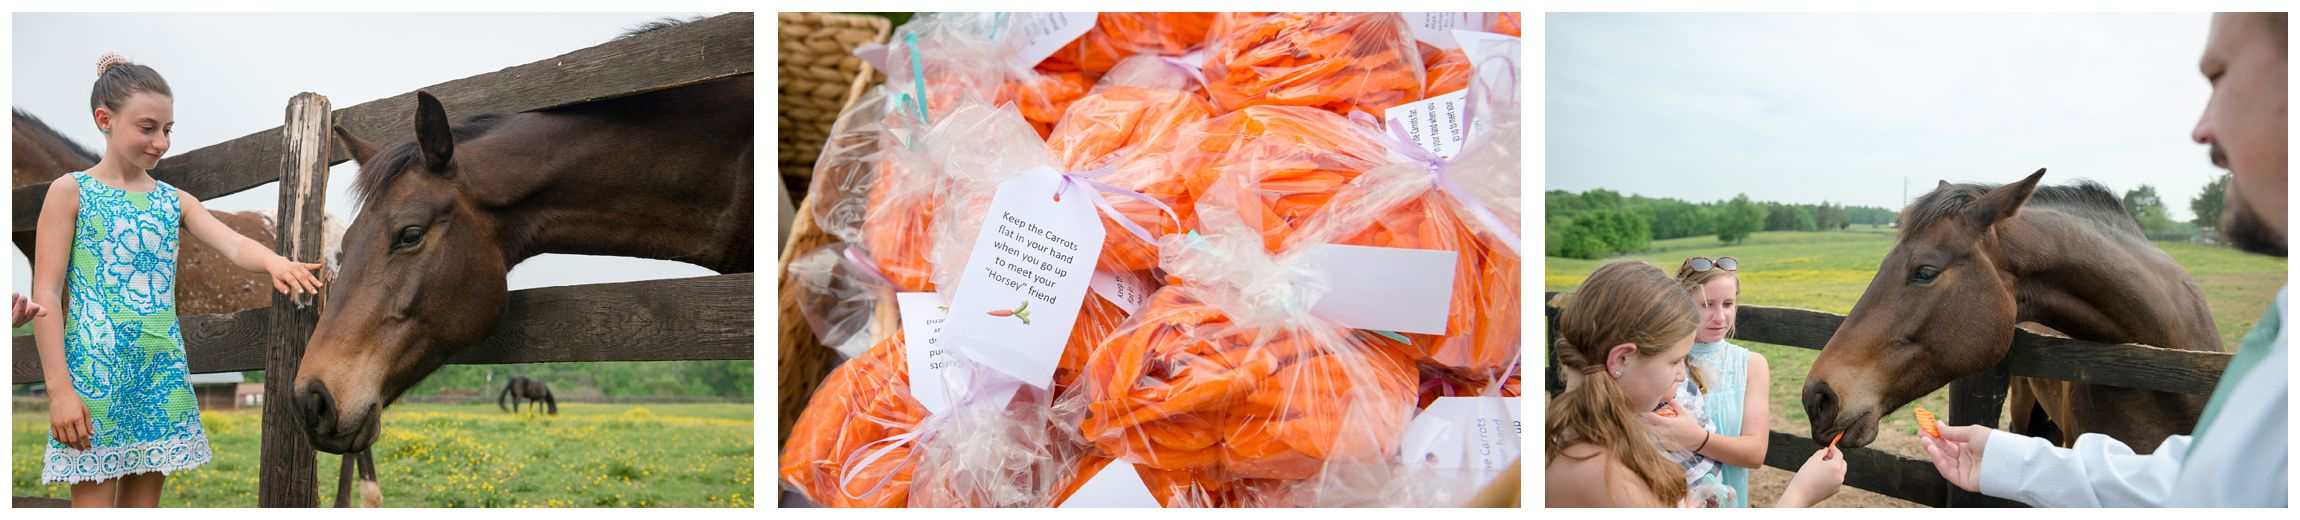 carrots for feeding horses at rustic wedding reception at Wolftrap Farm in Virginia